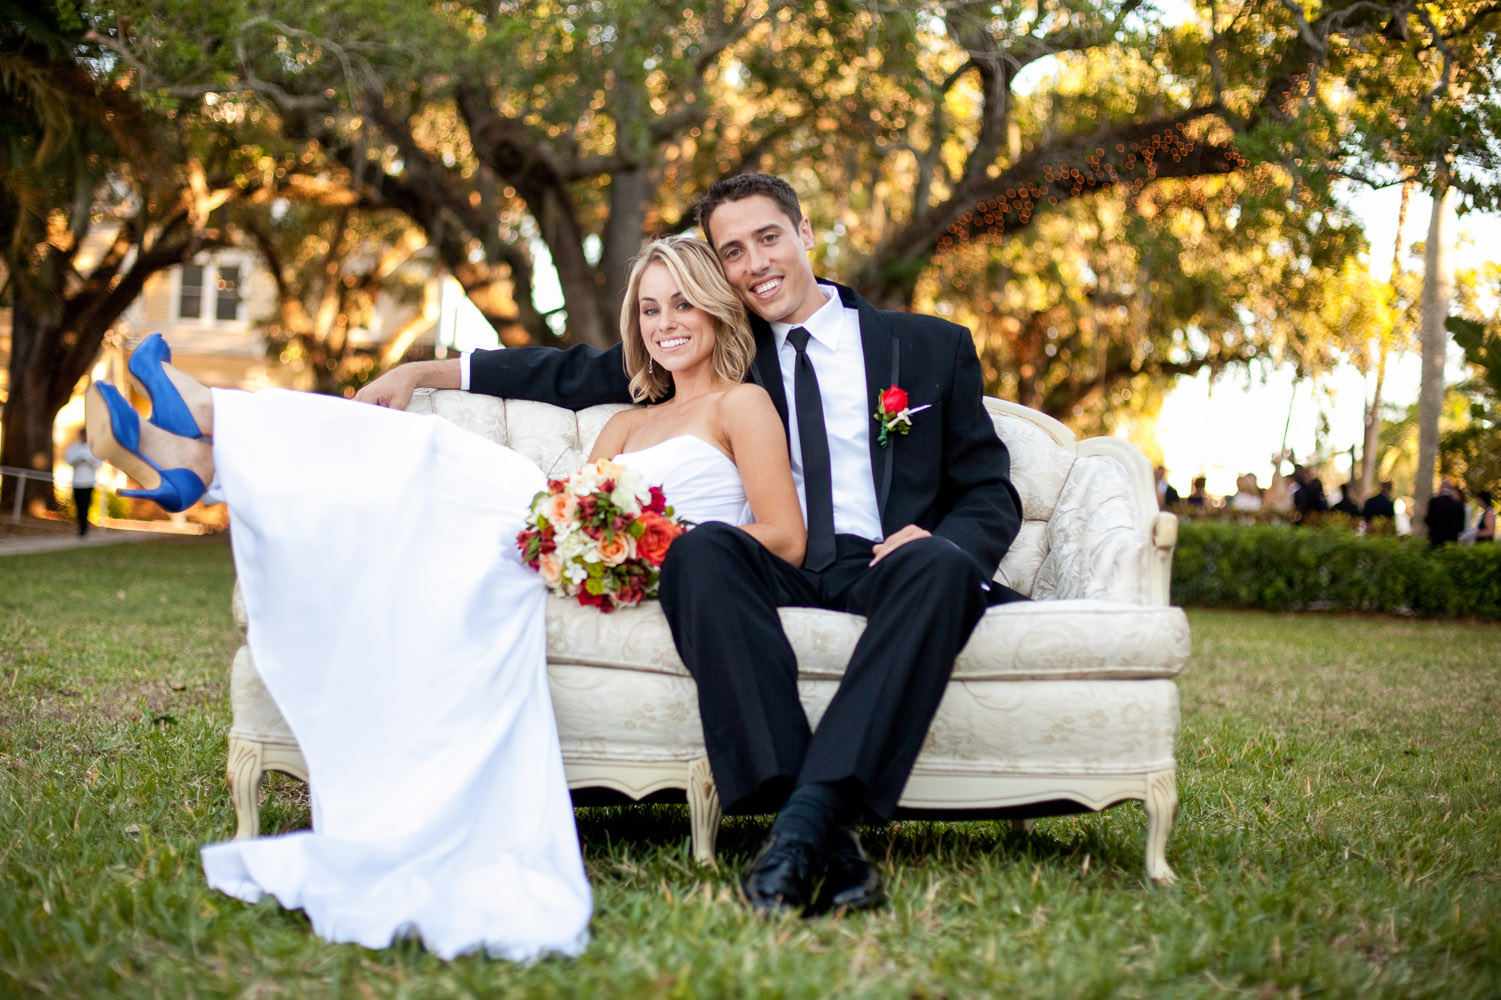 Hundreds-of-Moments-Wedding-Photography-Burrows-Home-Ft-Myers-060